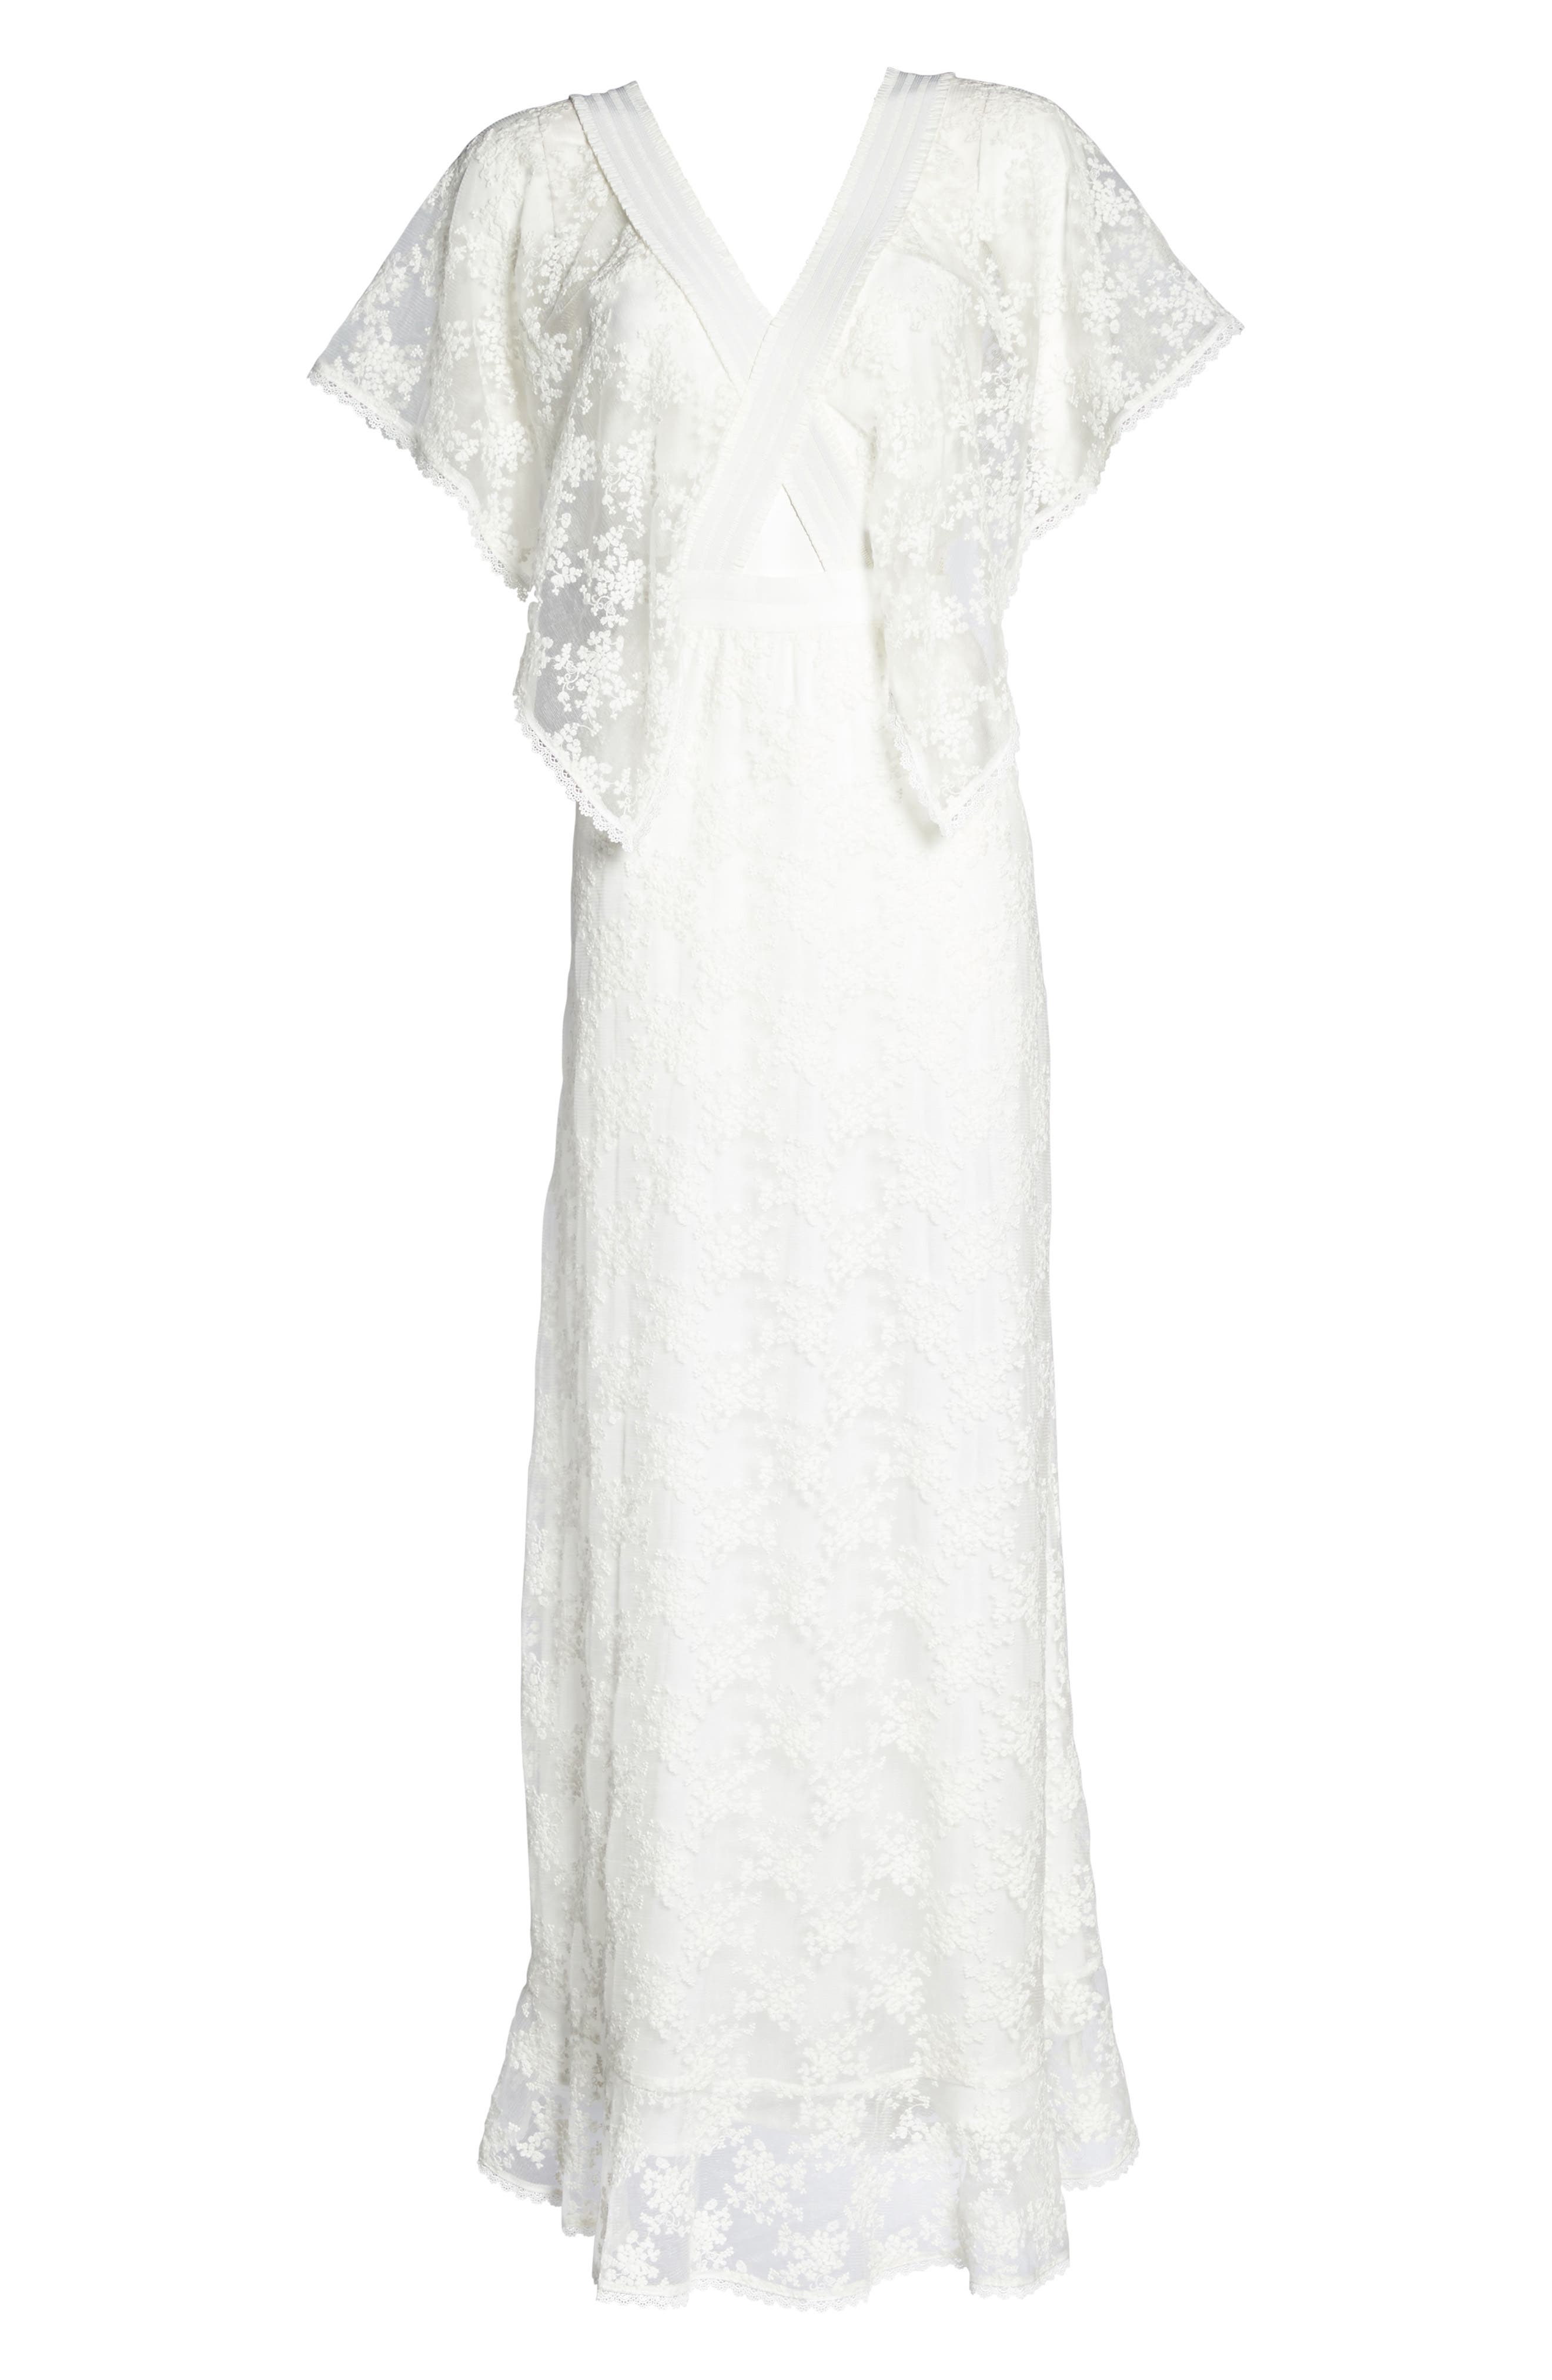 August Handkerchief Sleeve Embroidered Long Dress,                             Alternate thumbnail 6, color,